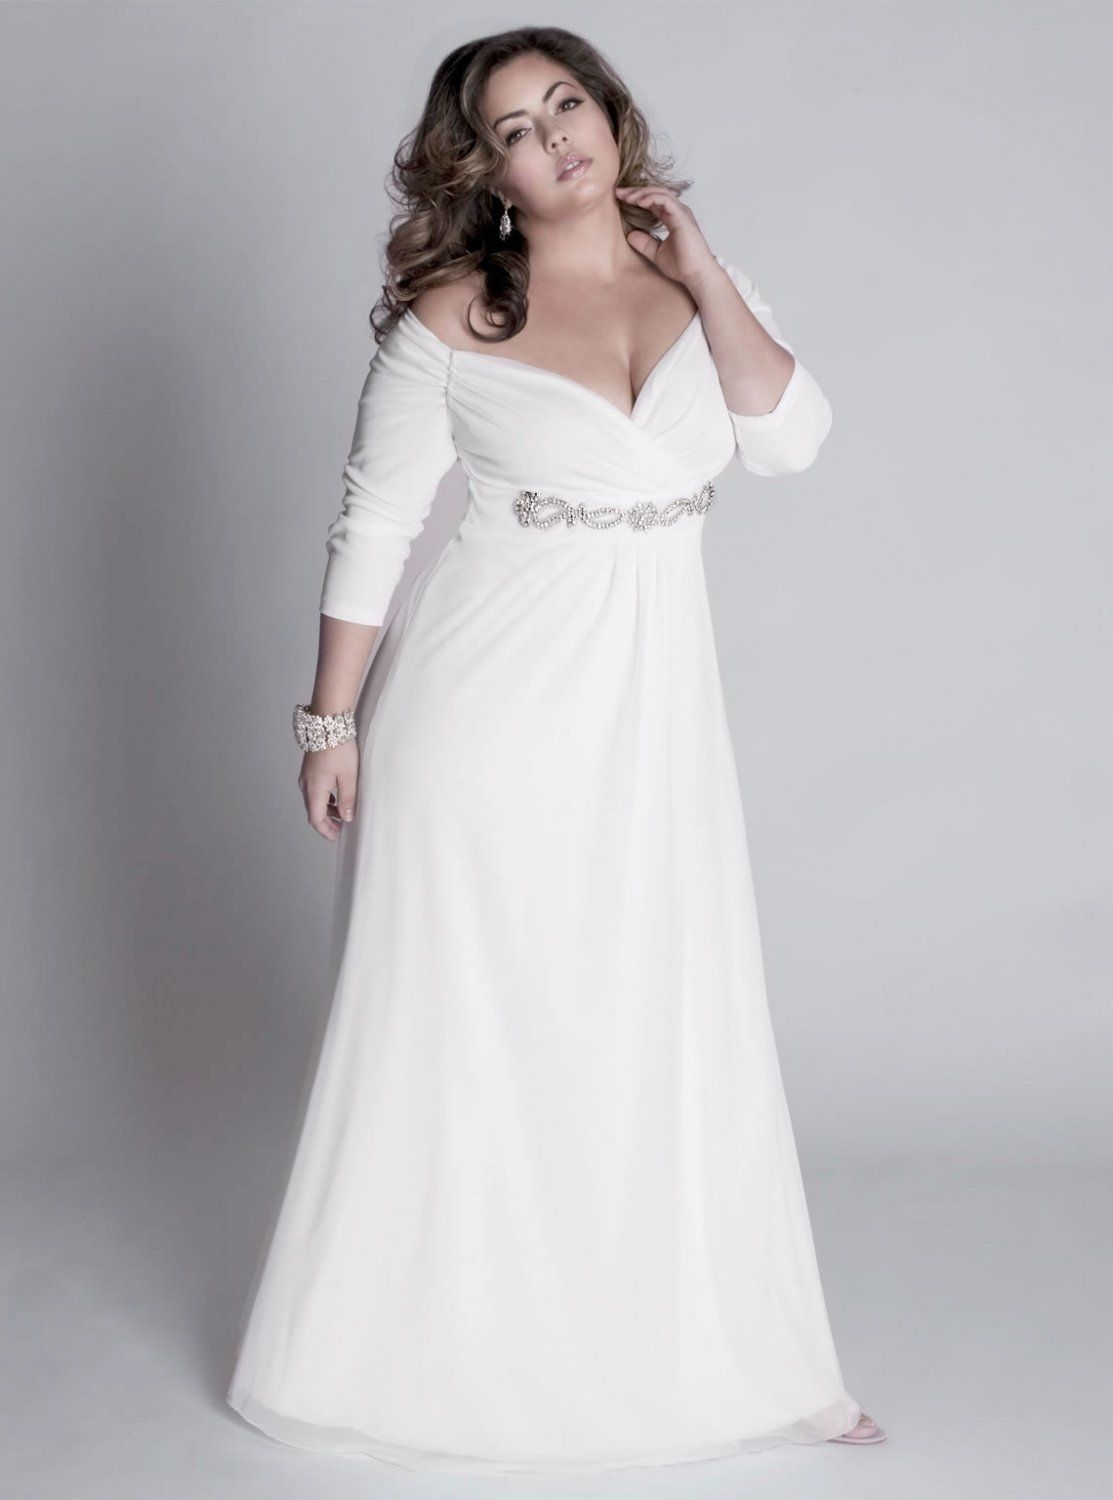 Darius Custom Long Sleeve Evening Gowns - White Plus Size Formal ...